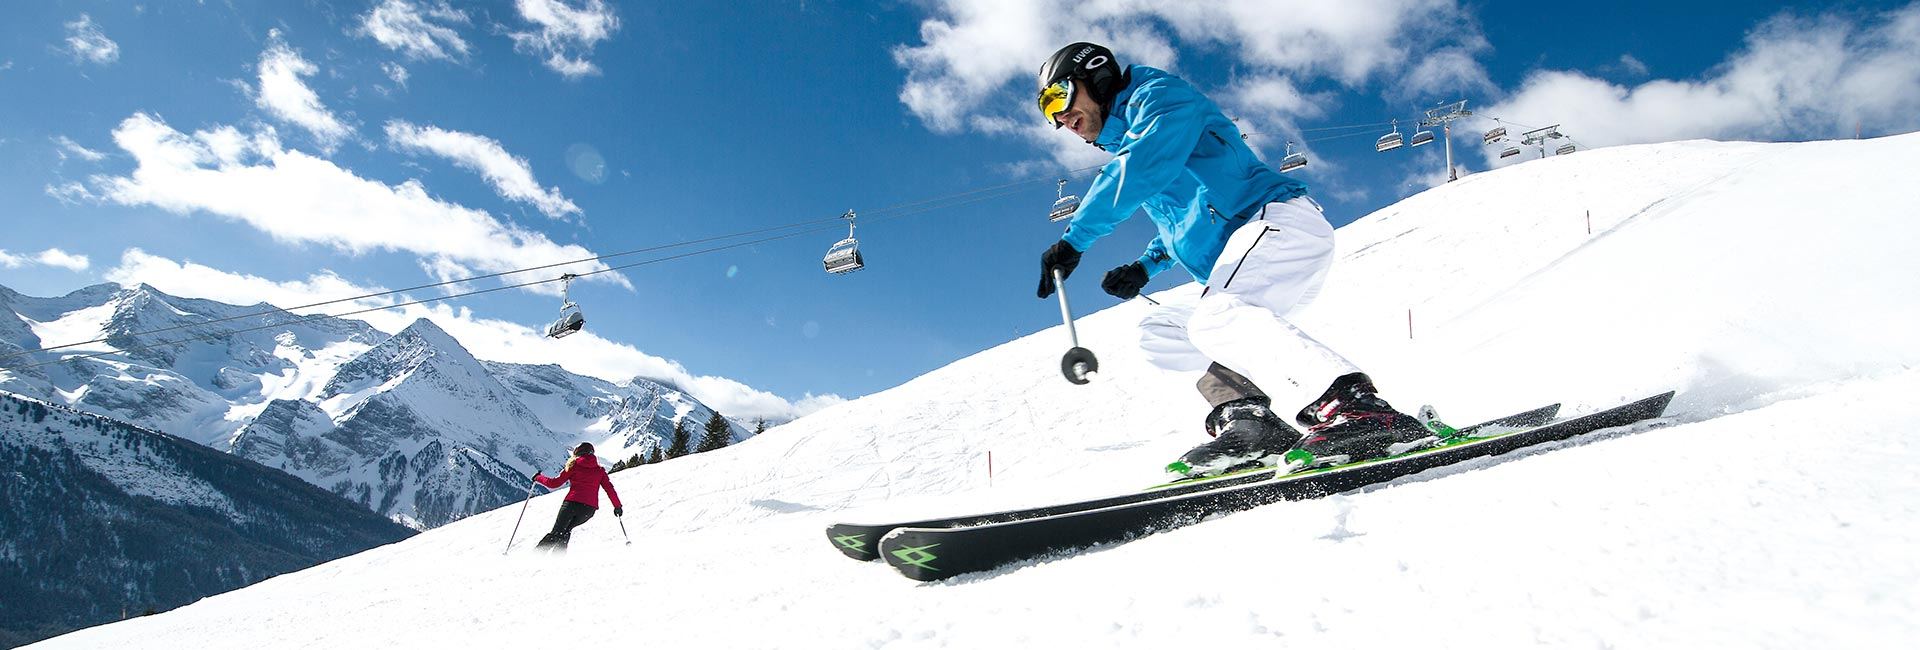 Eggalm - a Paradise for ambitious Skiers